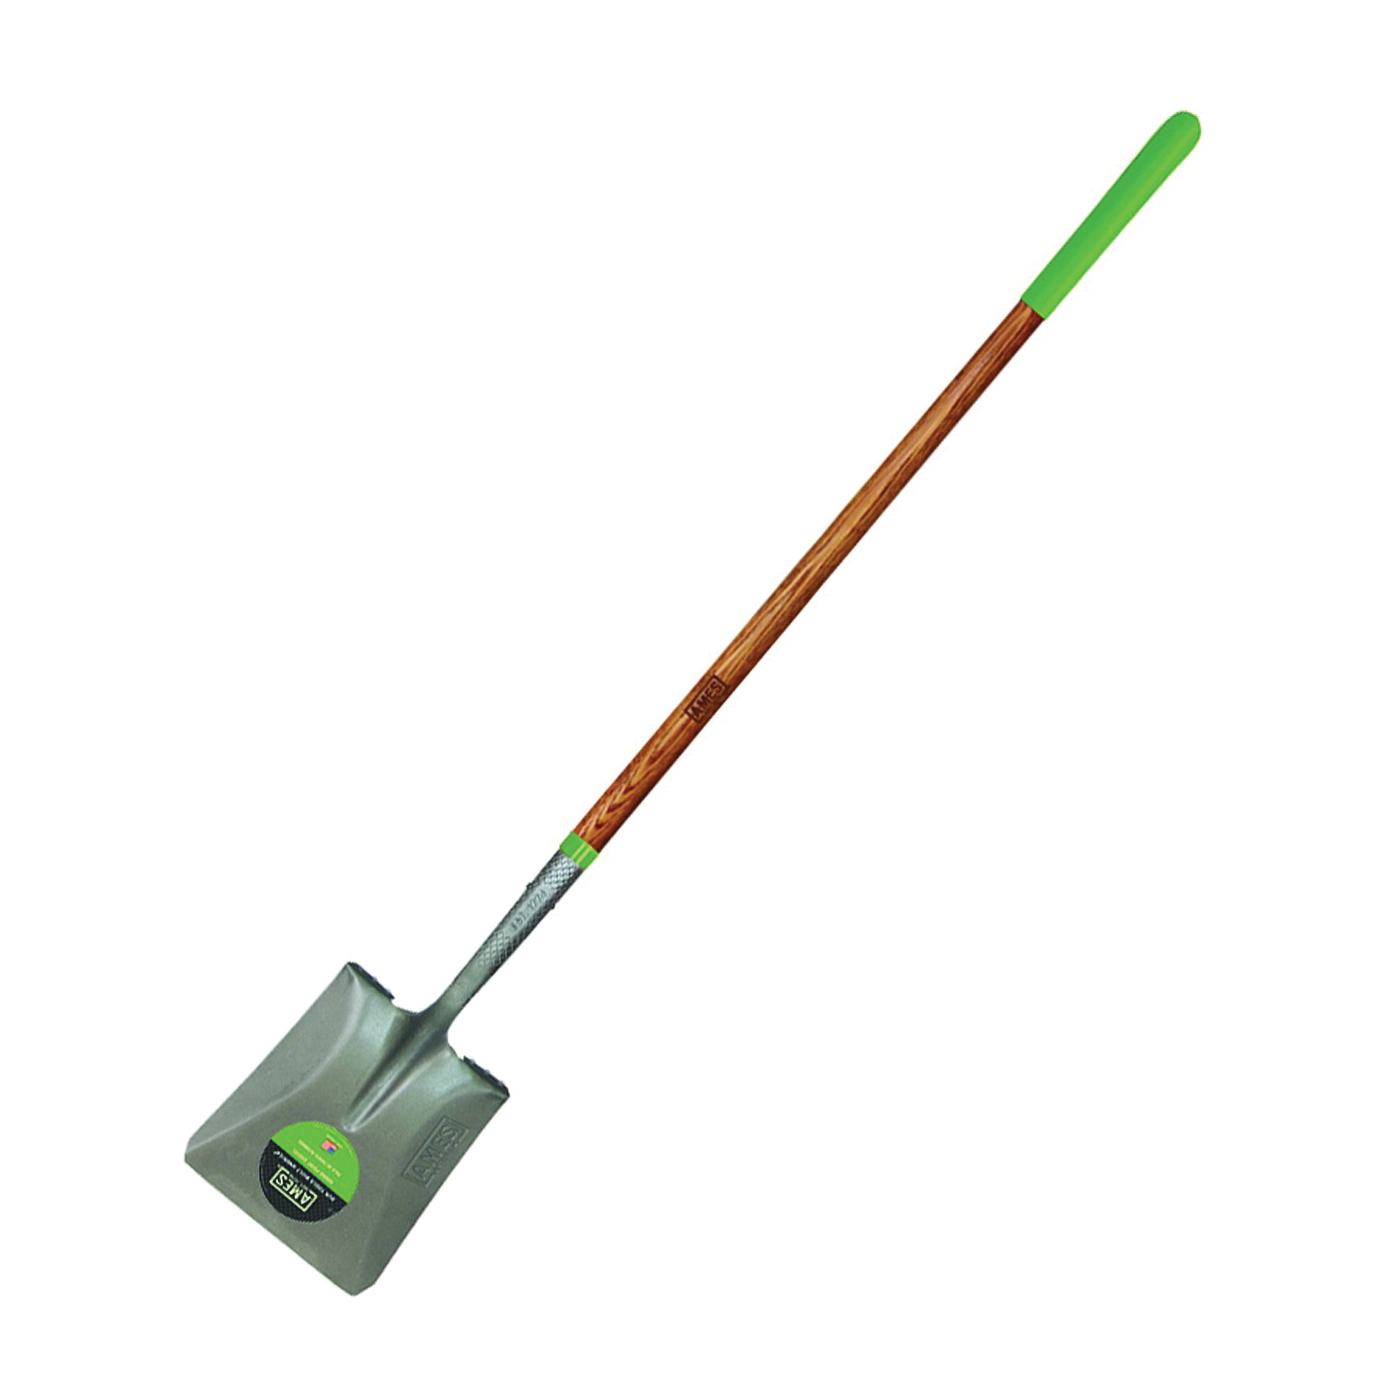 Picture of AMES 2535700 Square Point Shovel, 9-3/4 in W Blade, Steel Blade, Ashwood Handle, Cushion Grip Handle